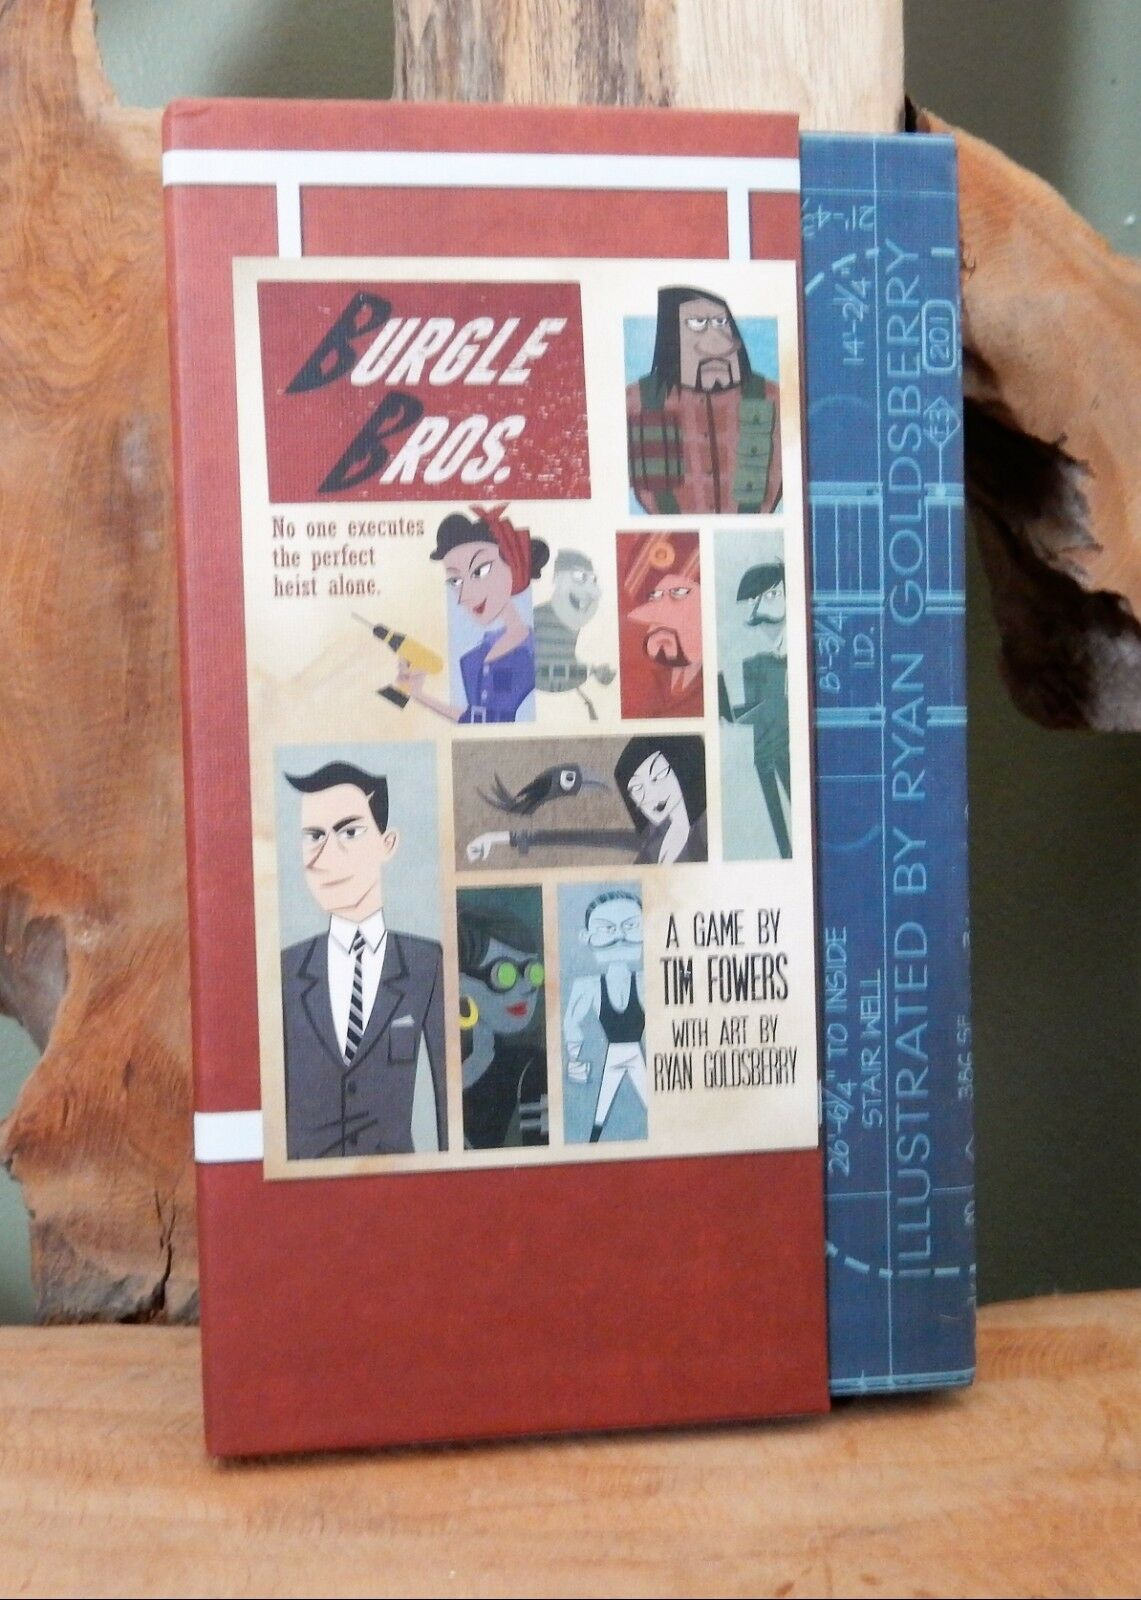 Burgle Bros. (2015) 2015 golden Geek Best Family Game Nominee - RARE L@@K